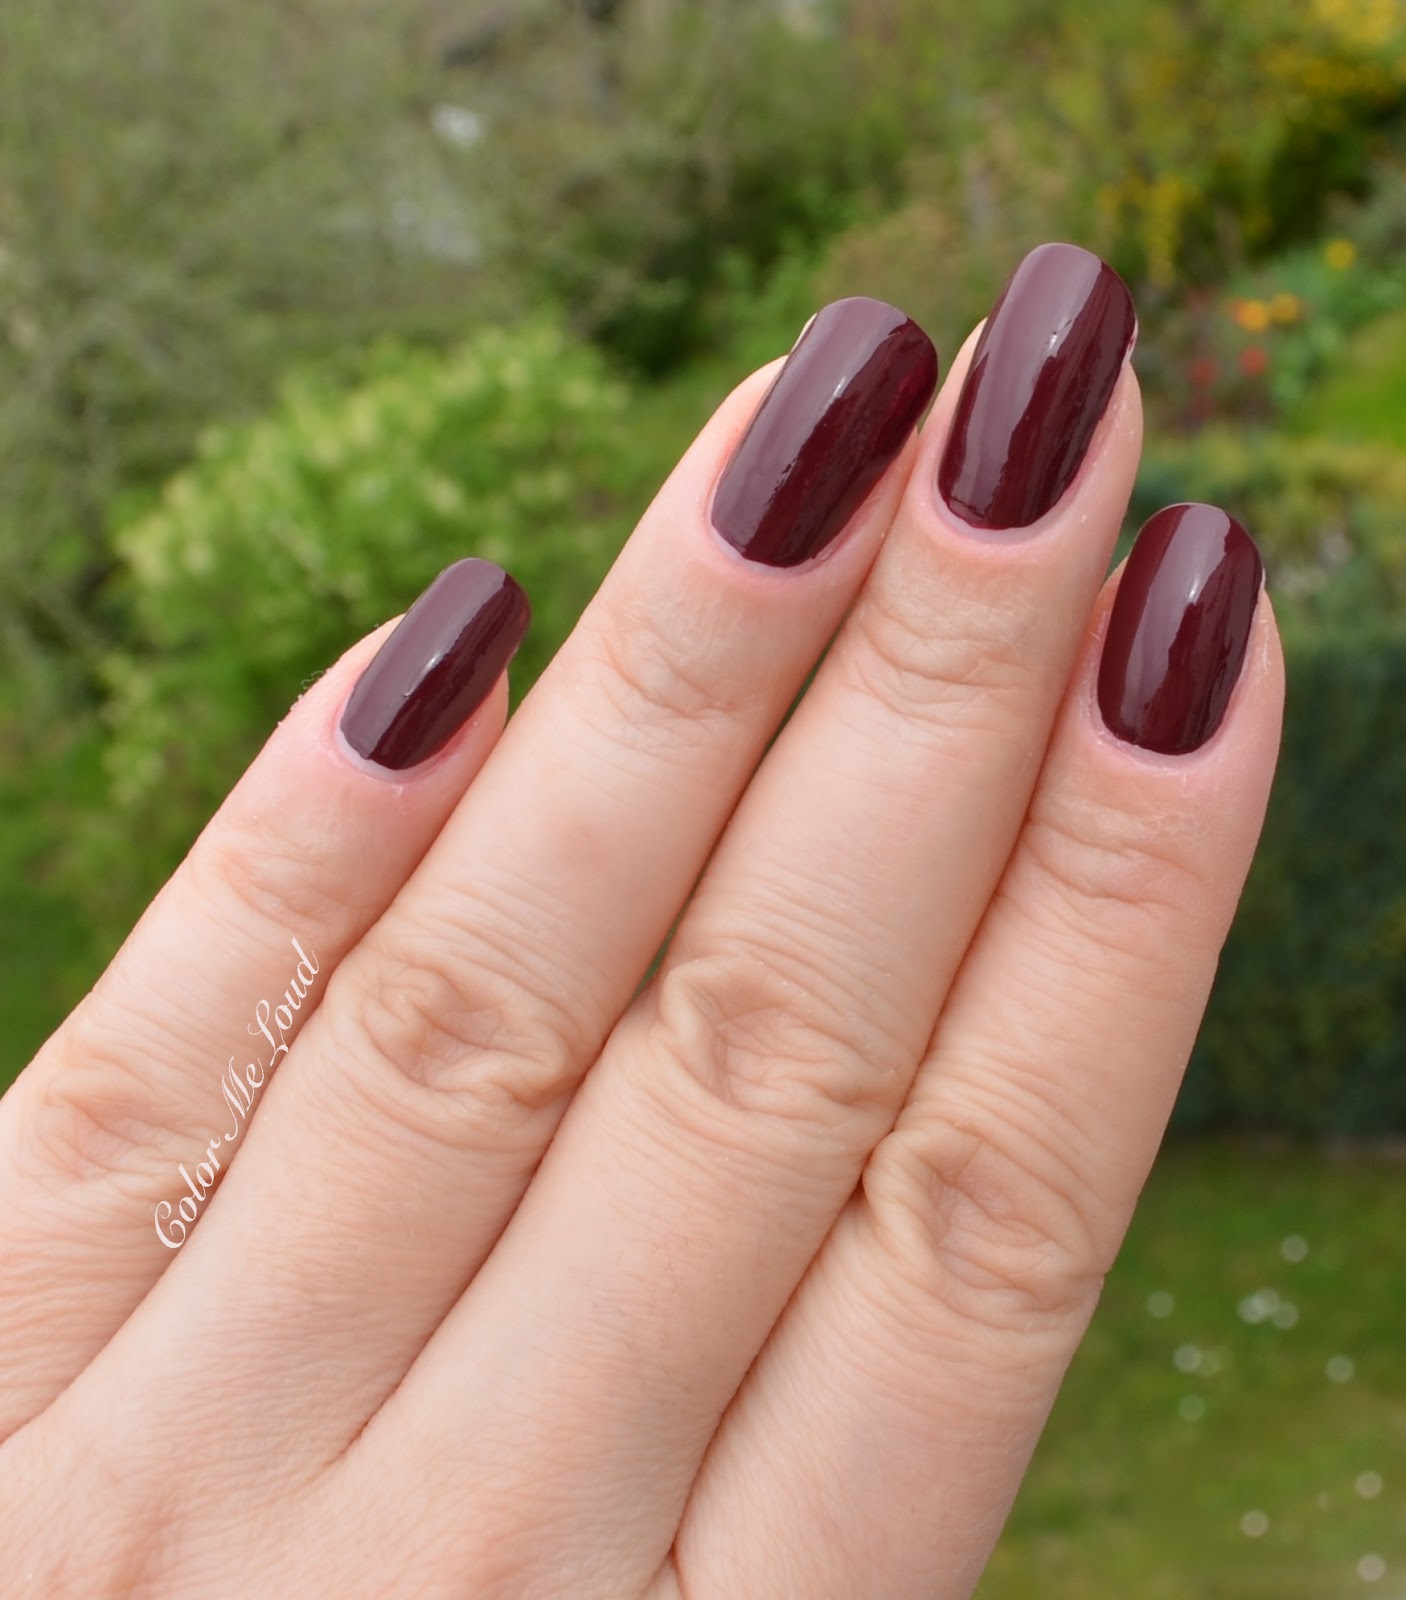 Vernis Nail: Chanel Le Vernis Long Wear Nail Colour Reds, Review